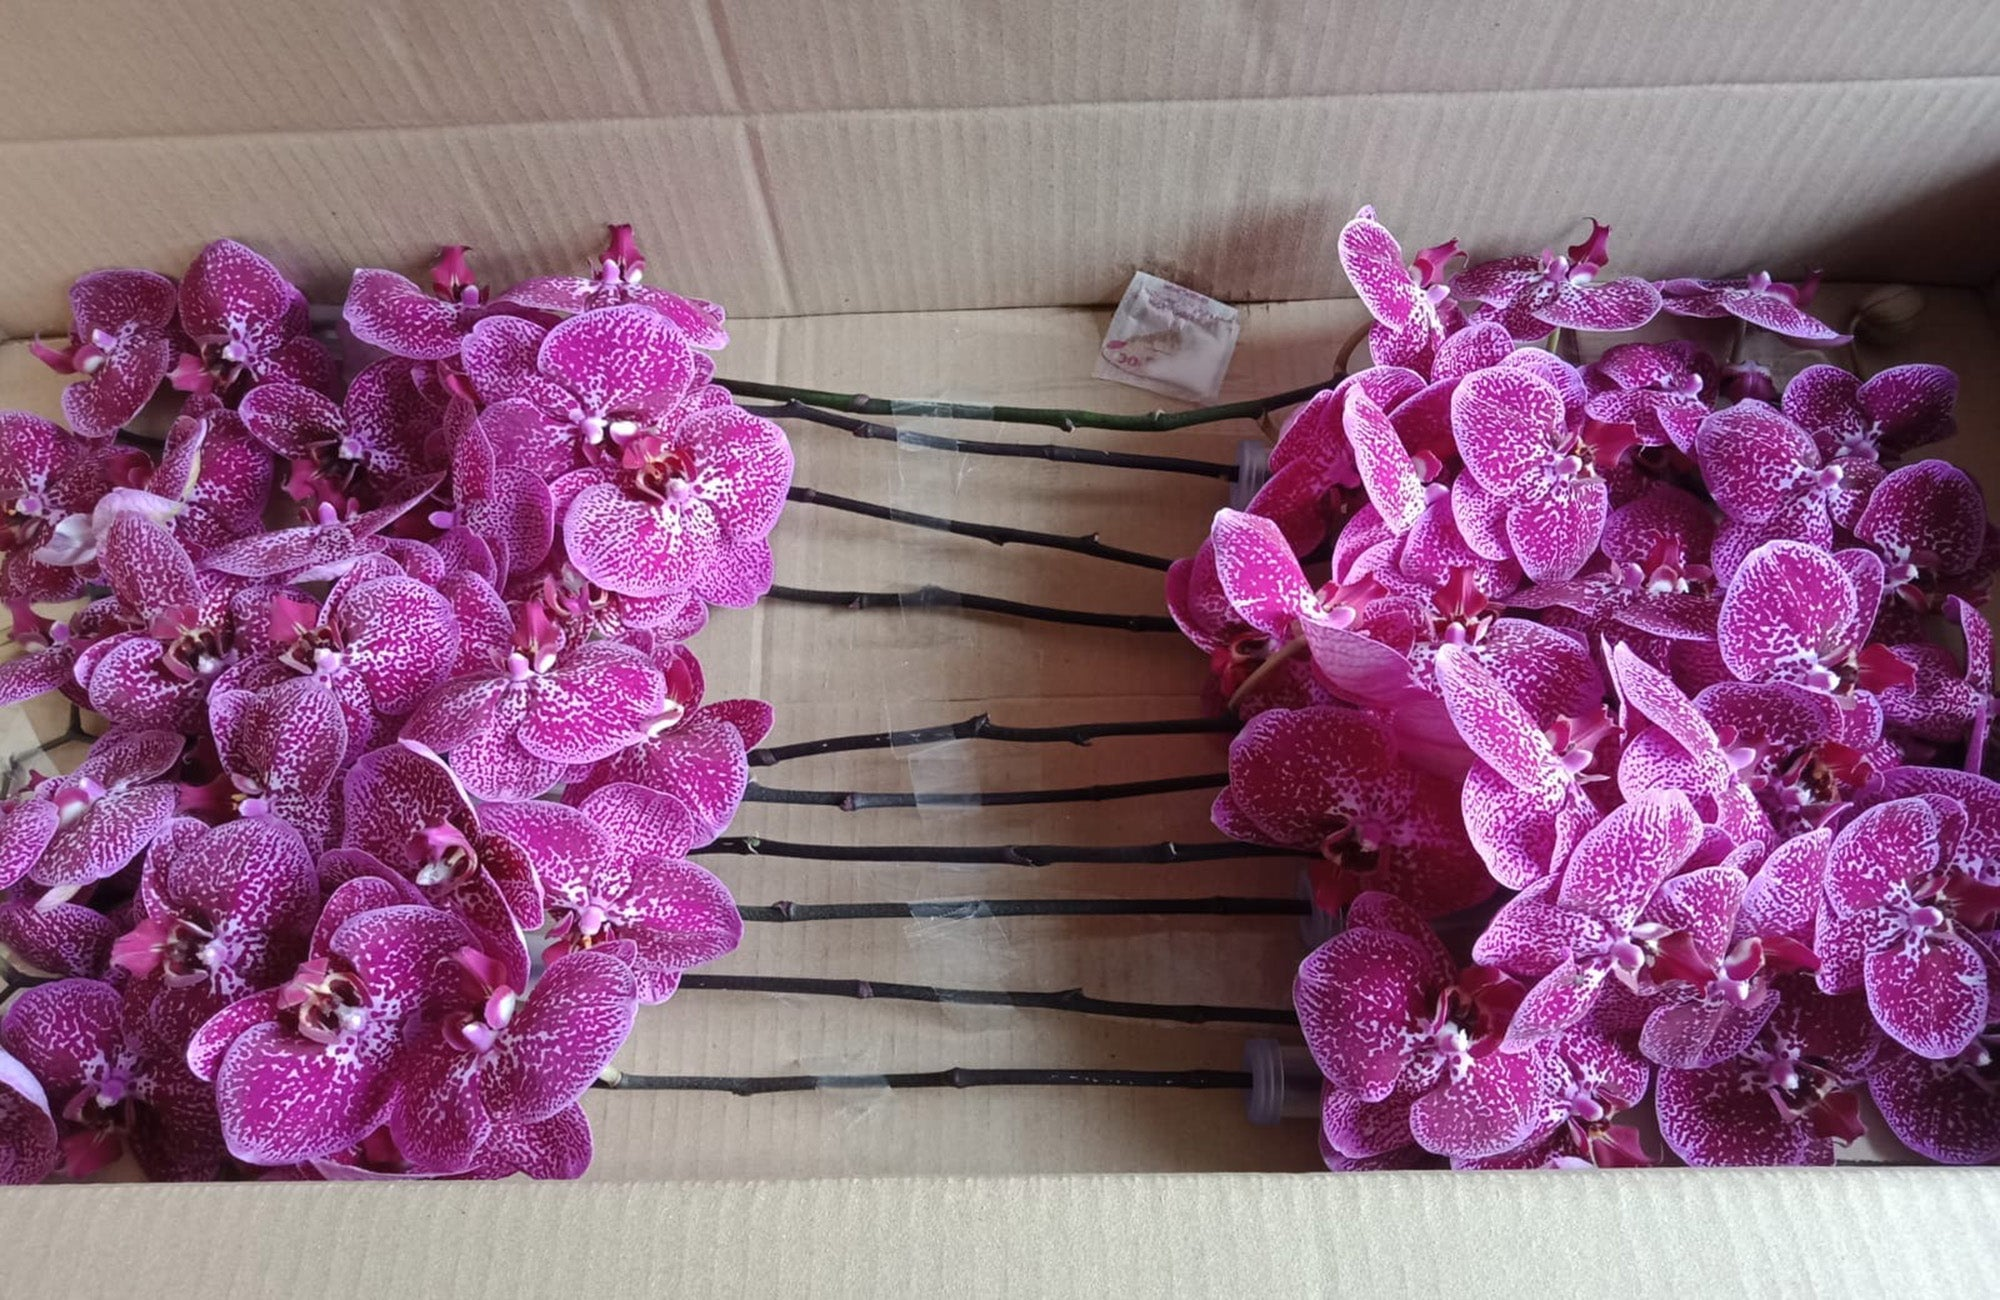 Box containing orchid flowers in pink